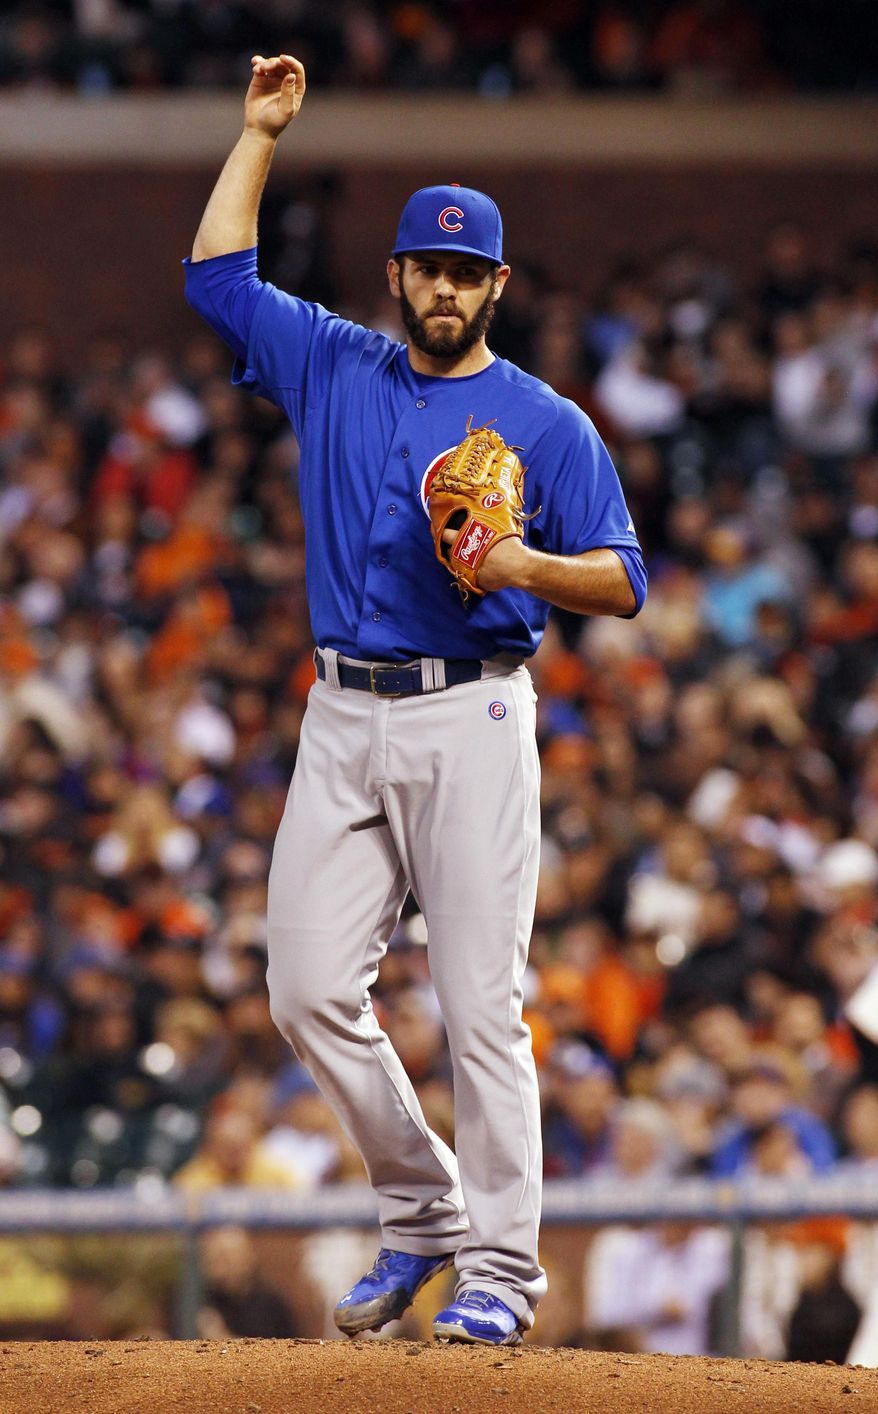 Chicago Cubs pitcher Jake Arrieta lifts his arm during the fifth inning of a baseball game against the San Francisco Giants, Tuesday, May 27, 2014, in San Francisco. (AP Photo/George Nikitin)